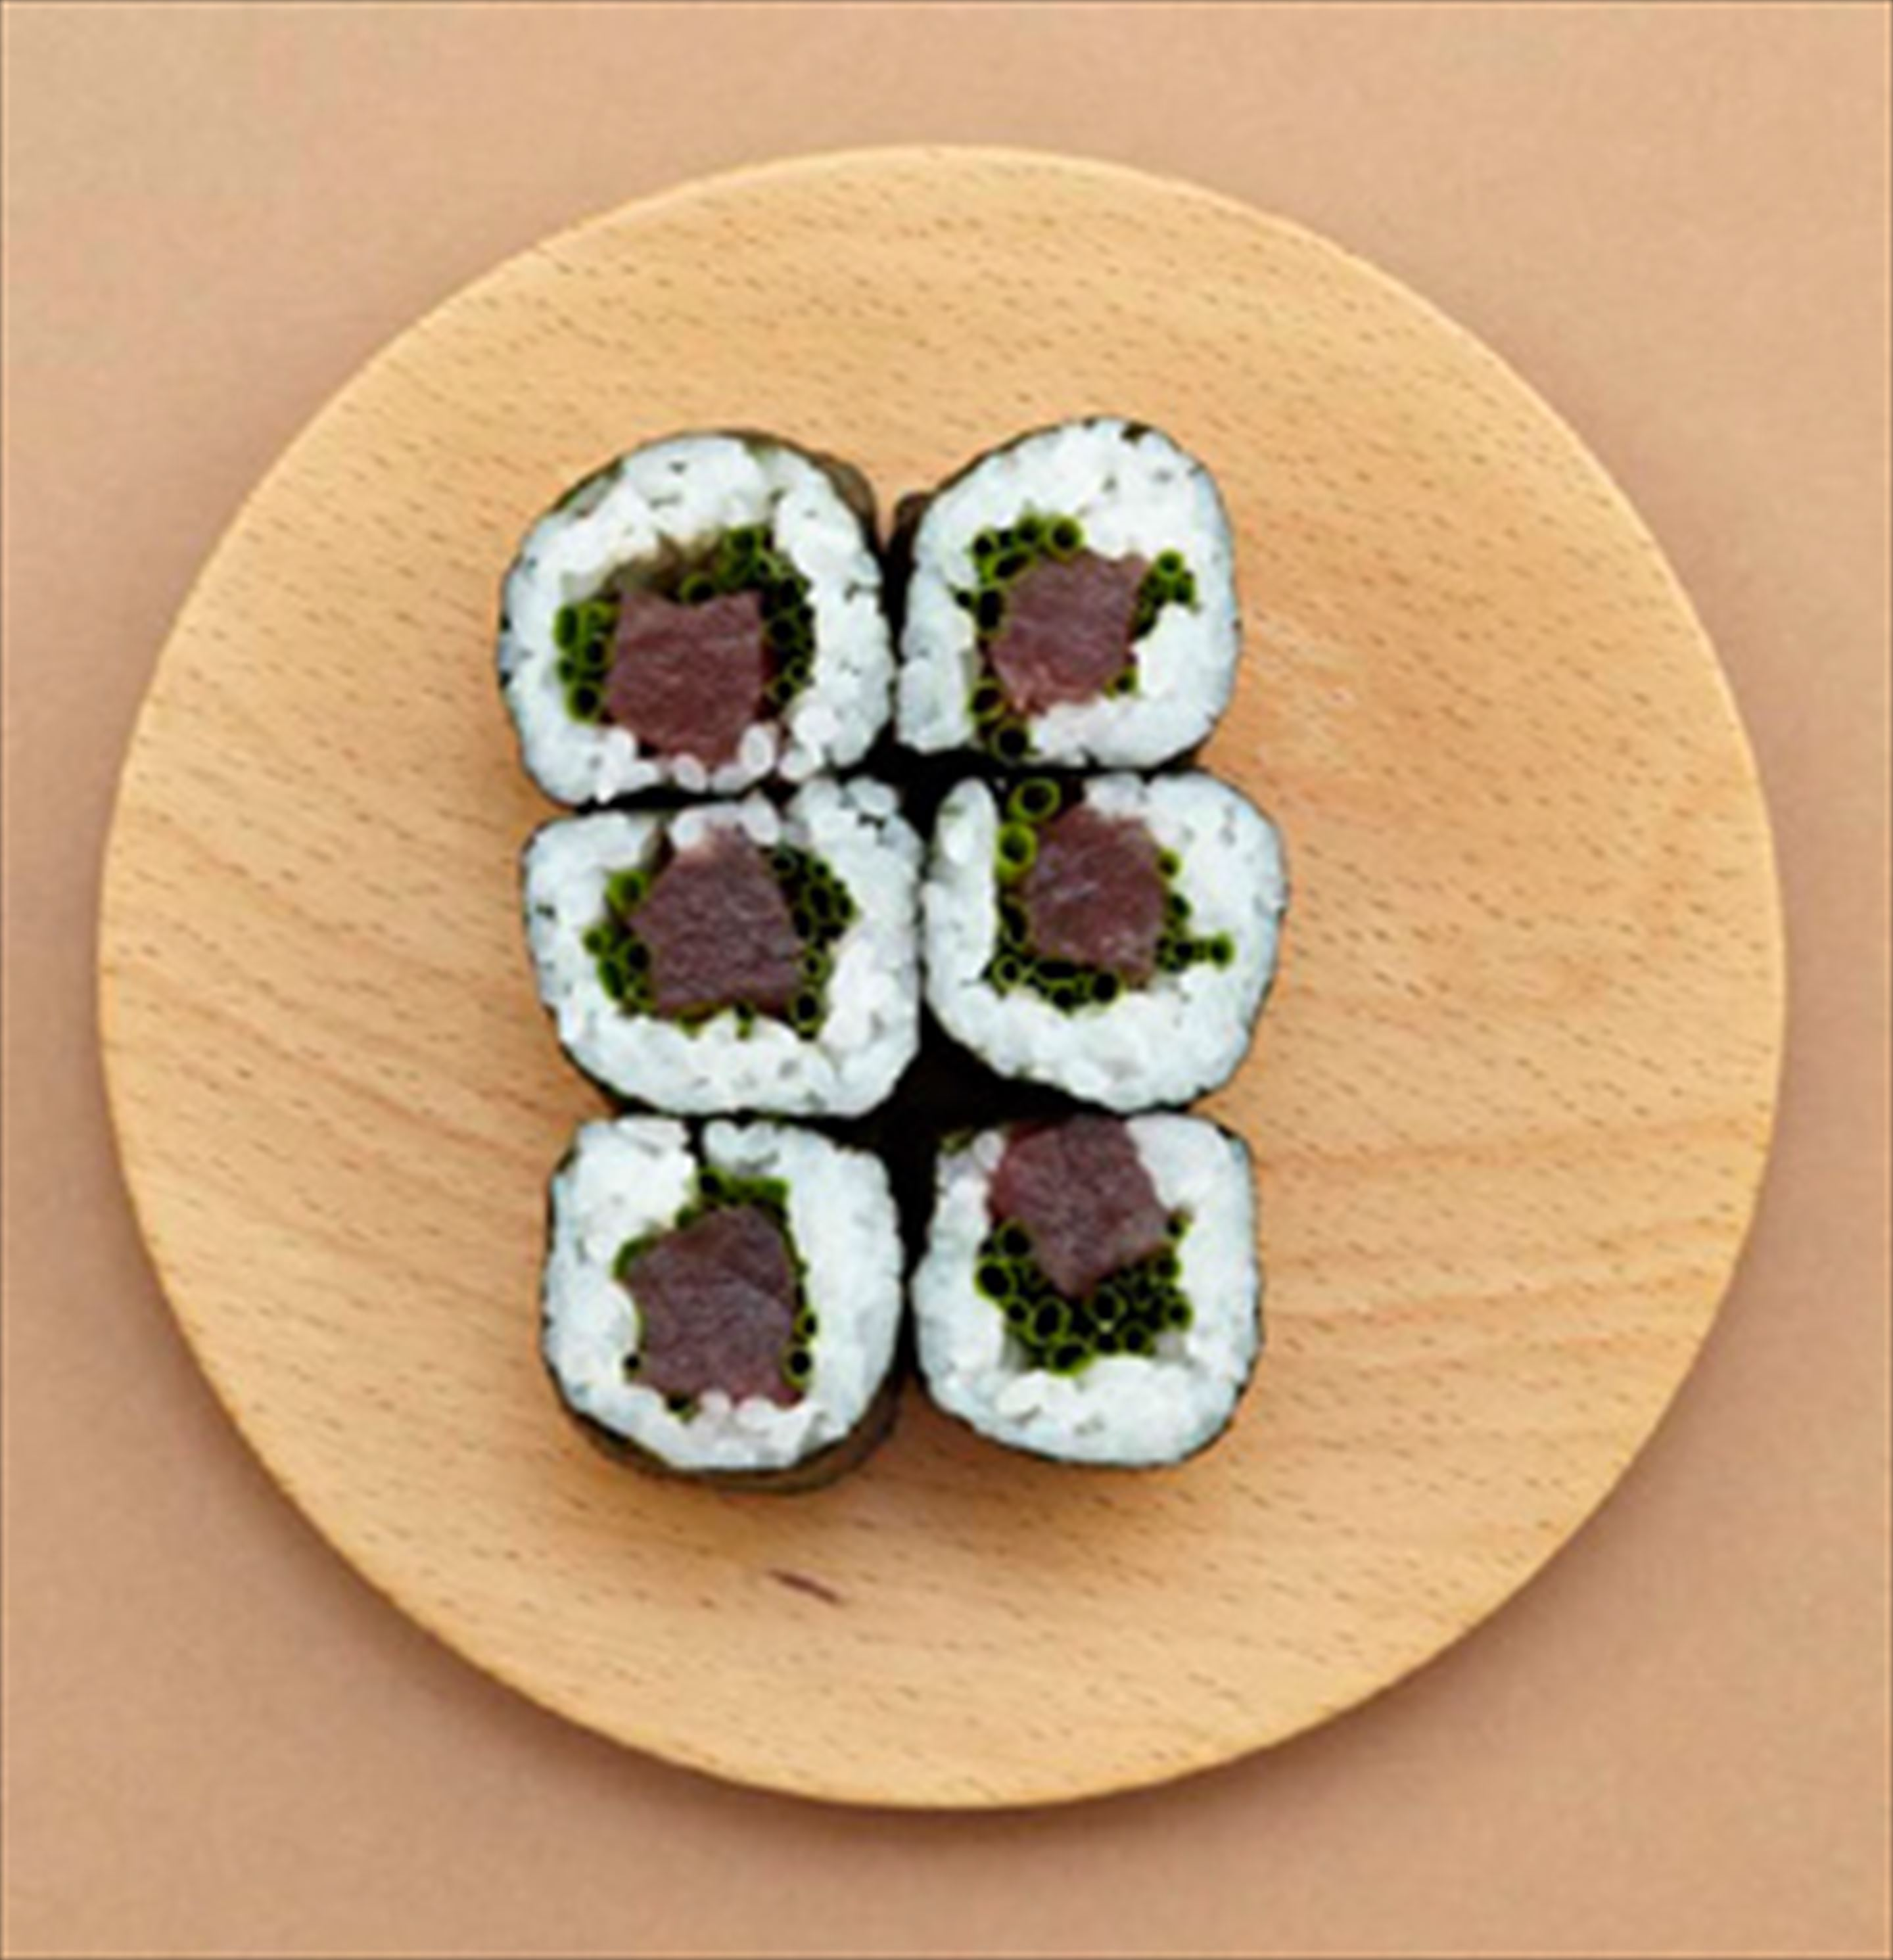 Tuna and chive hosomaki rolls